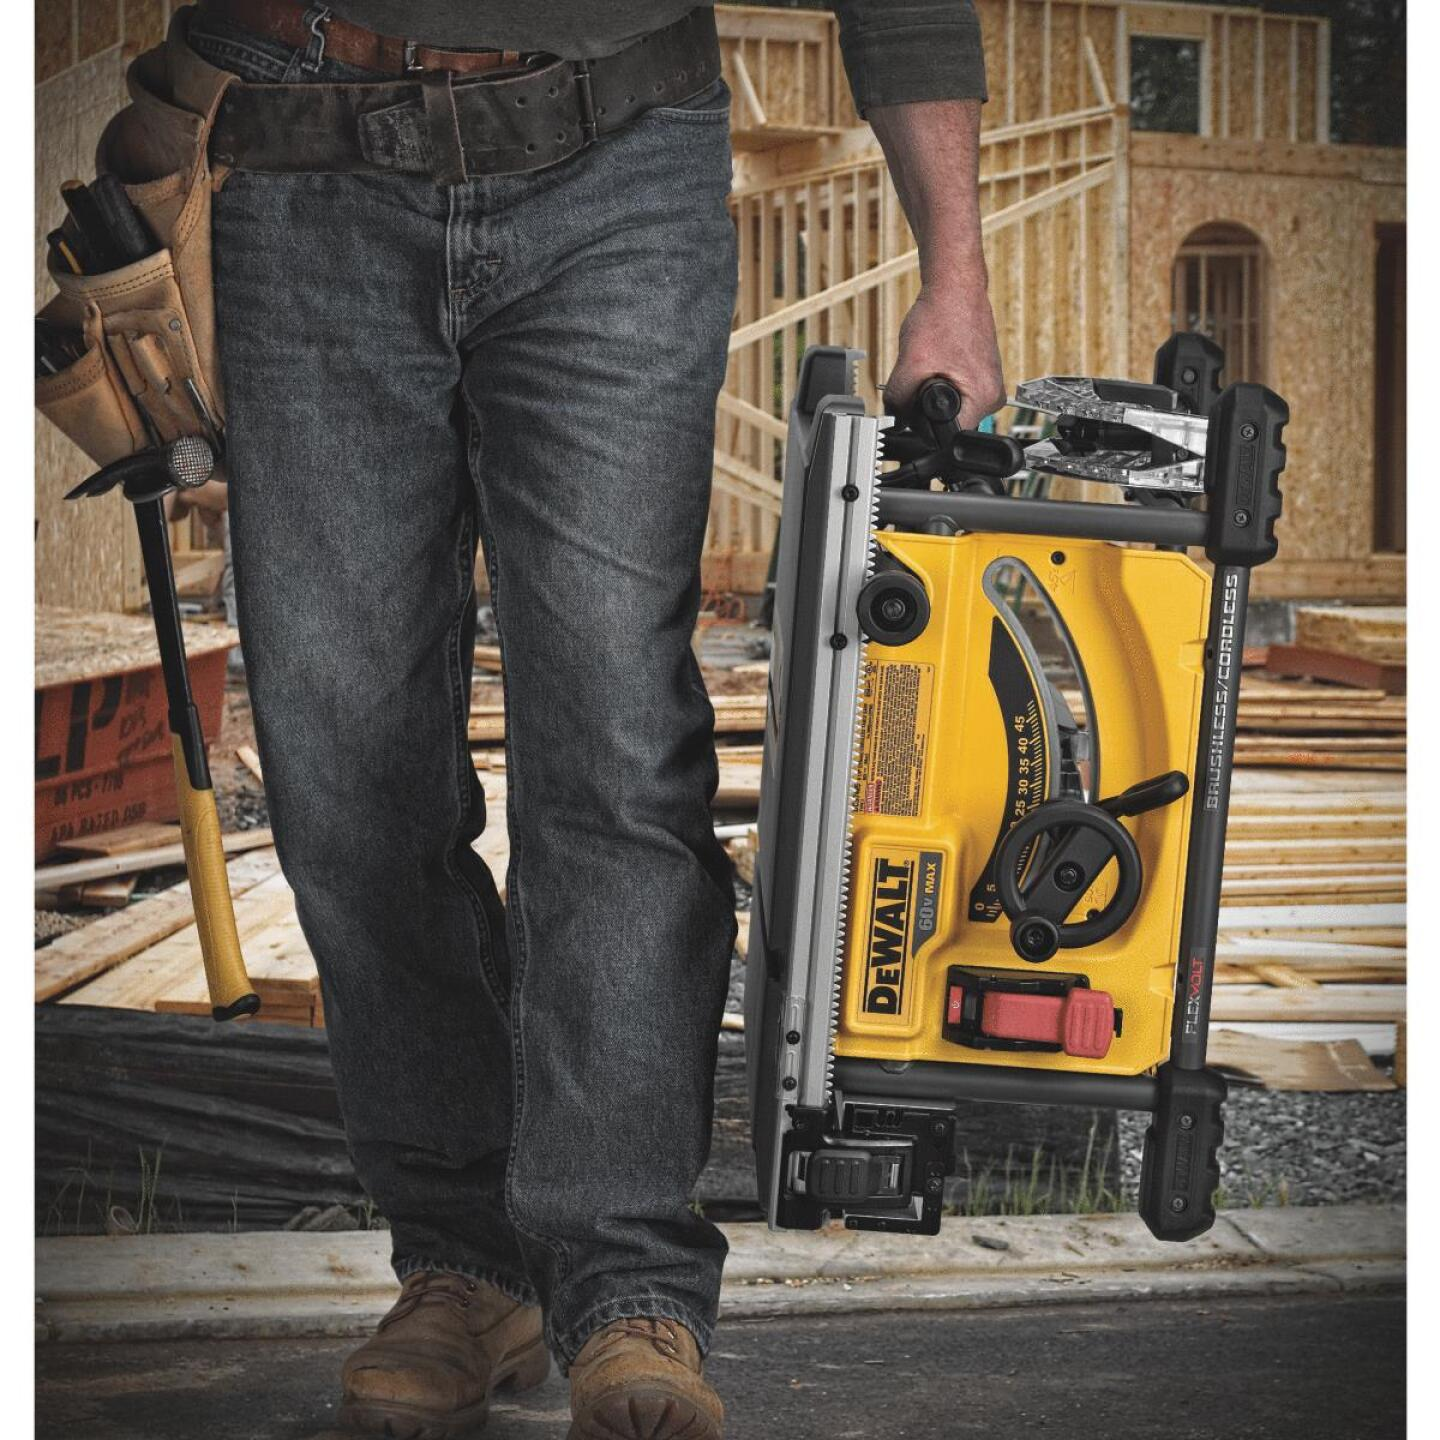 DeWalt Flexvolt 60-Volt MAX Lithium-Ion Brushless 8-1/4 In. Cordless Table Saw Kit Image 4